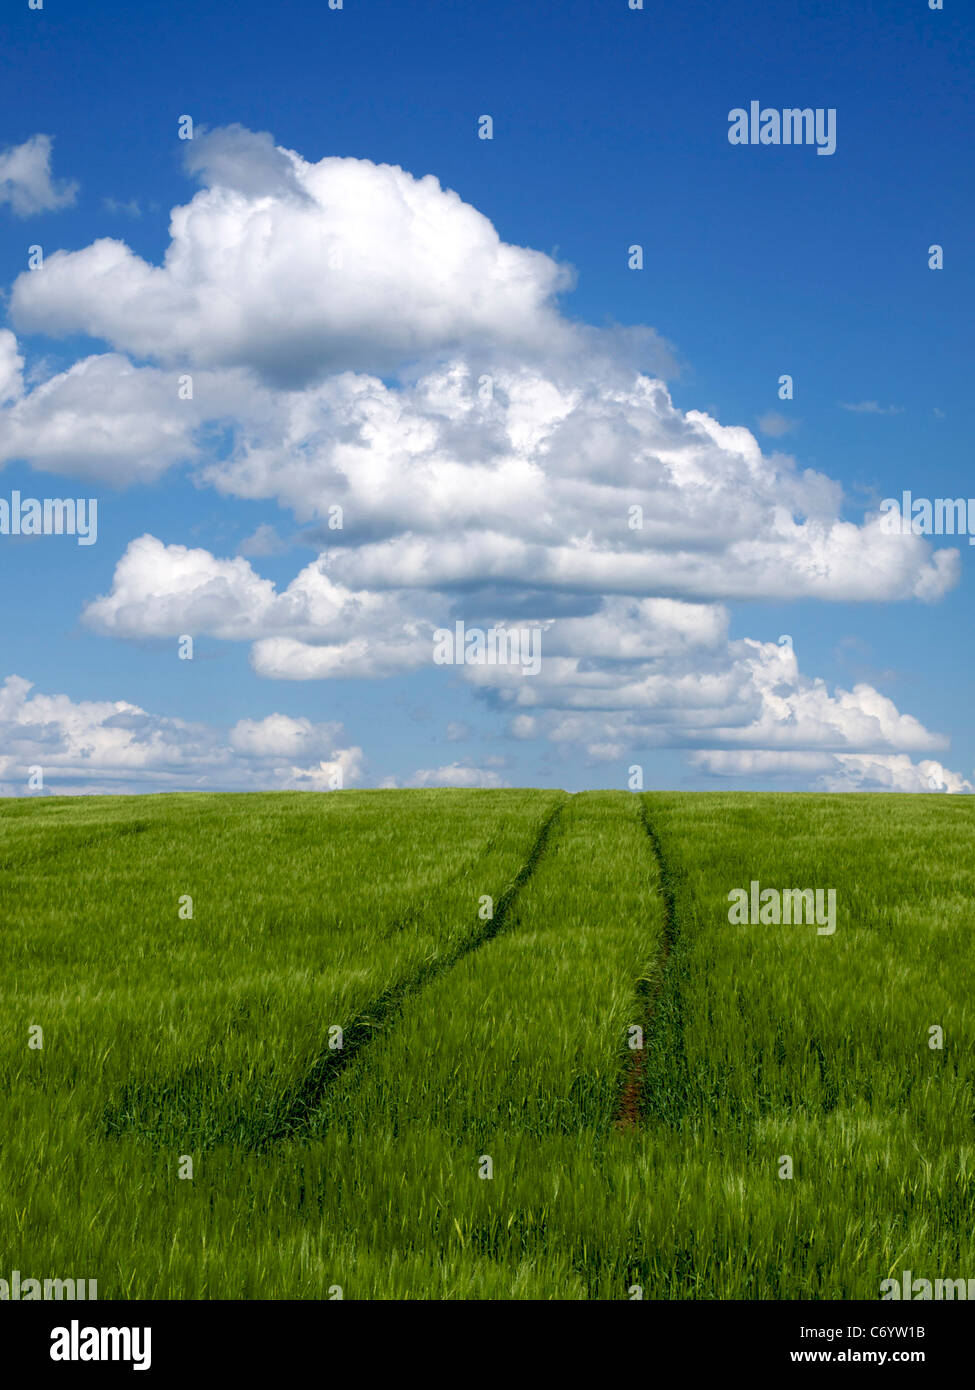 Tire tracks in a green wheat field. - Stock Image